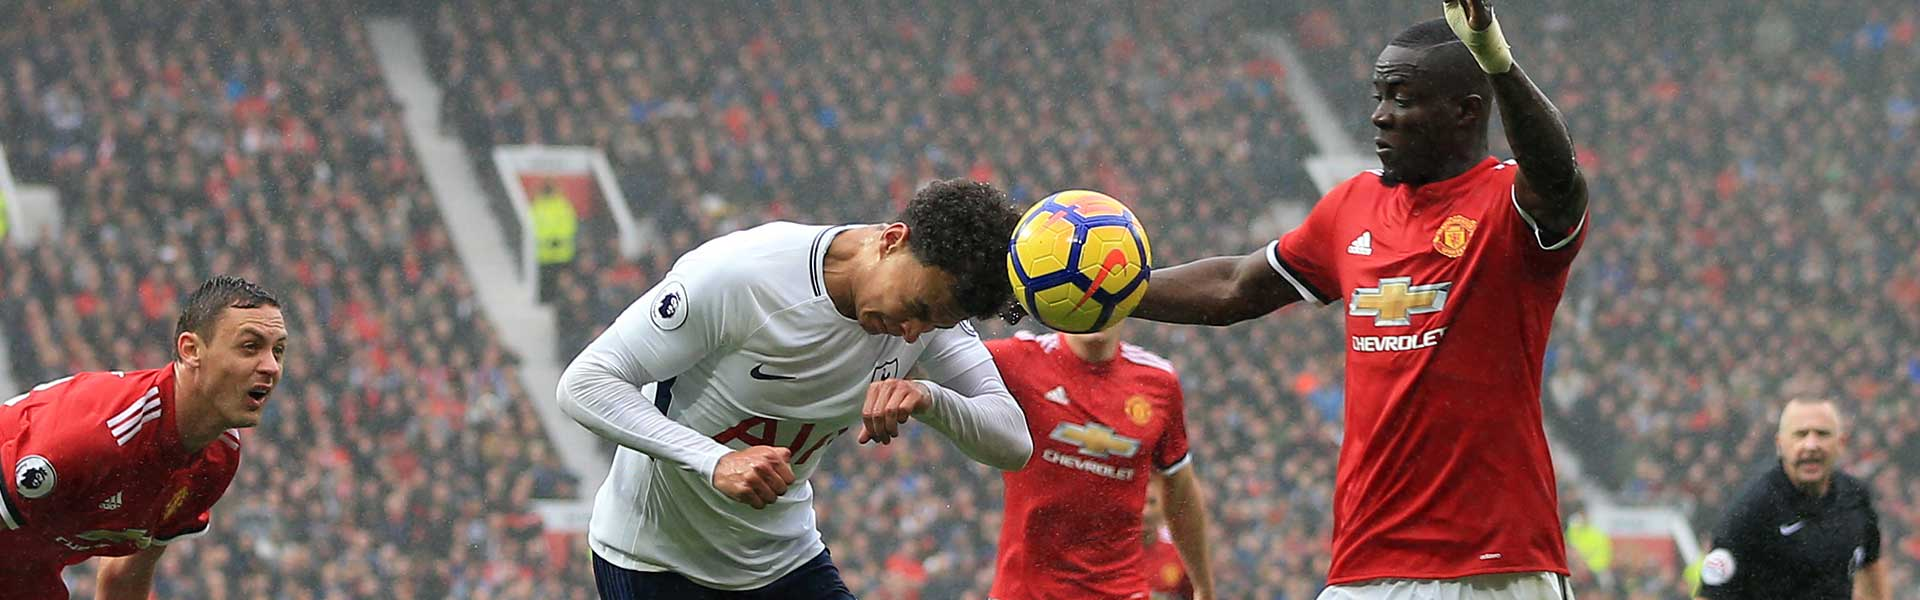 Premier League Preview, Betting Tips and Odds Week 25